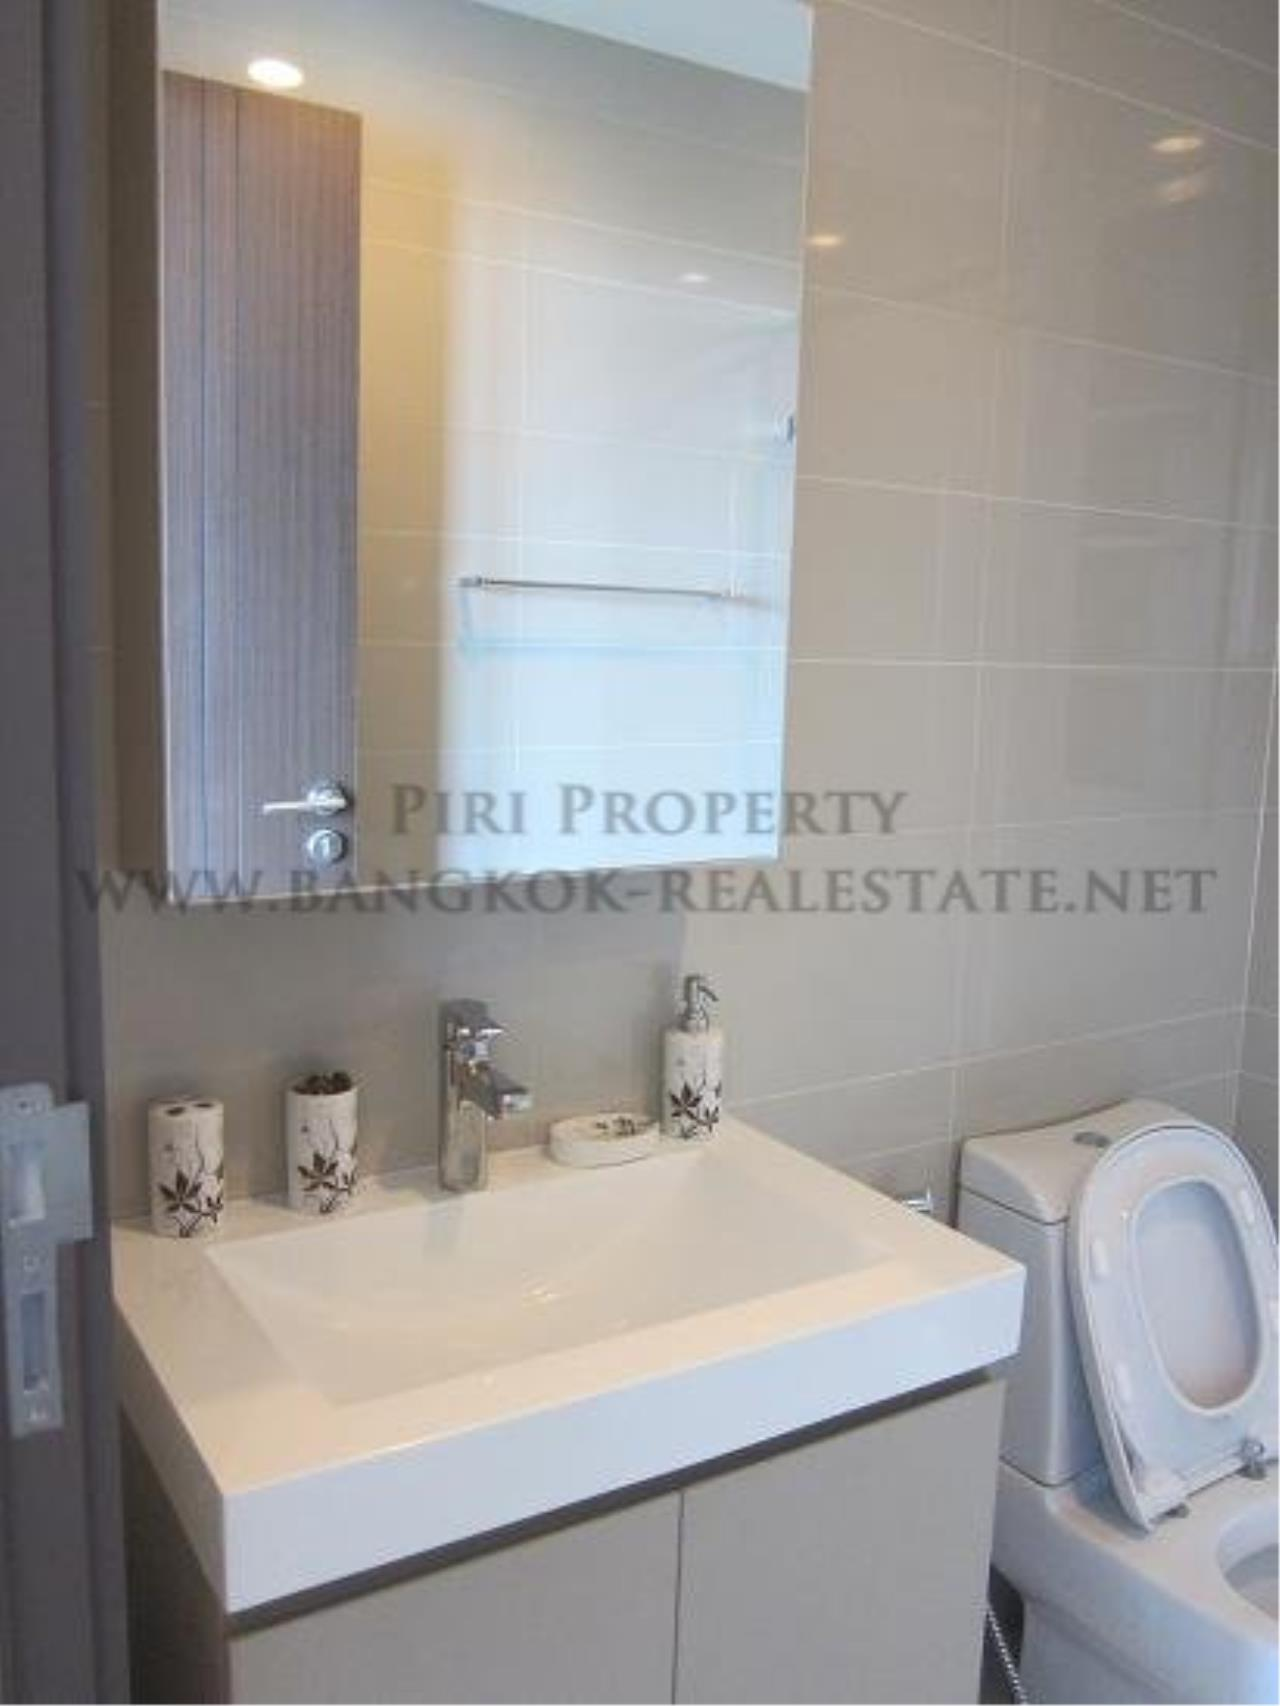 Piri Property Agency's Pyne by Sansiri Condo for Rent - 2 Bedroom on High Floor 5